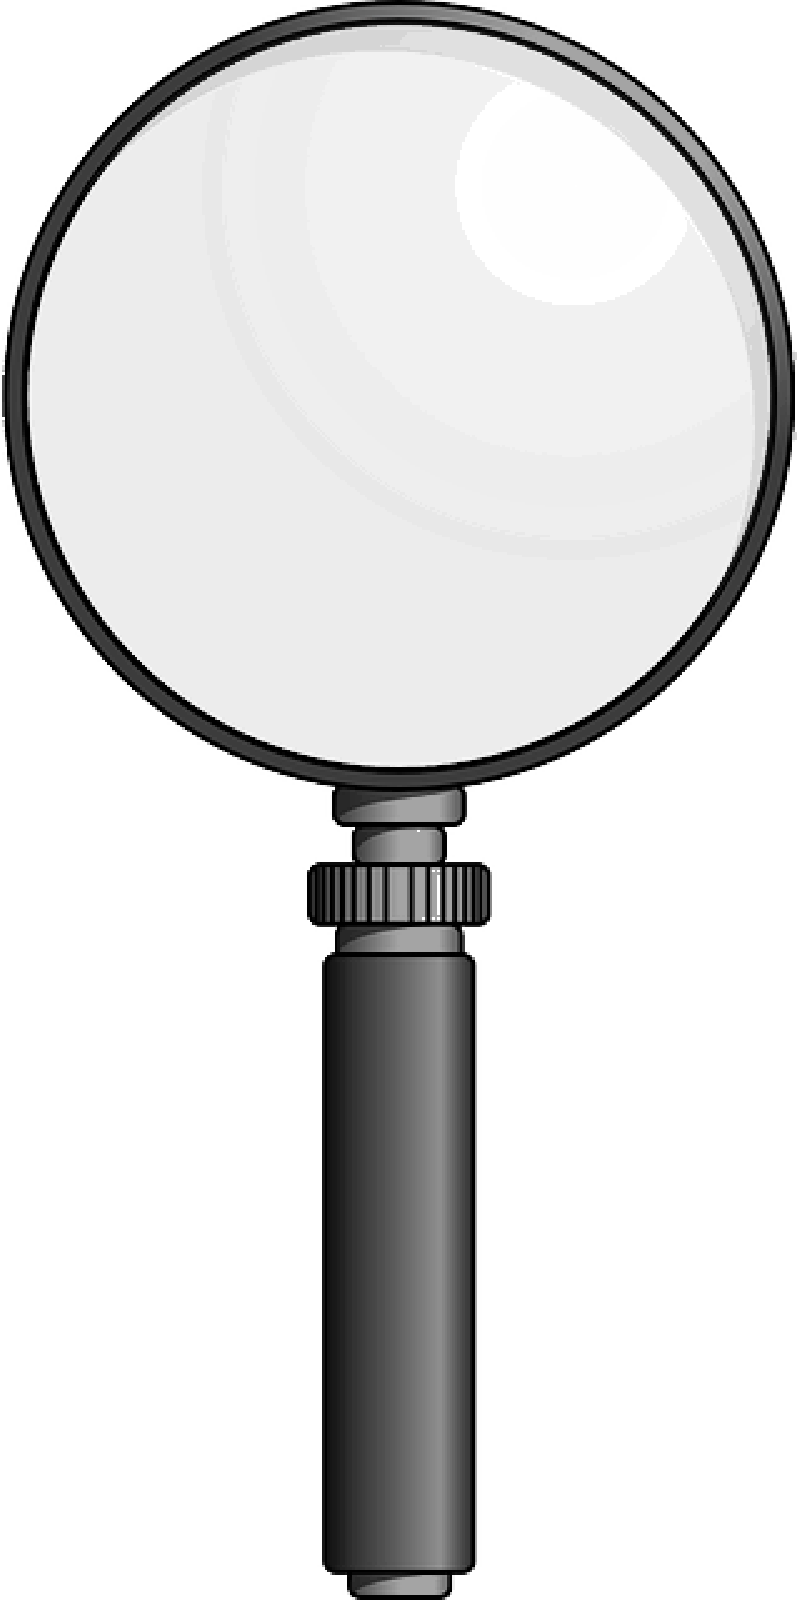 medium resolution of magnifying glas clipart free